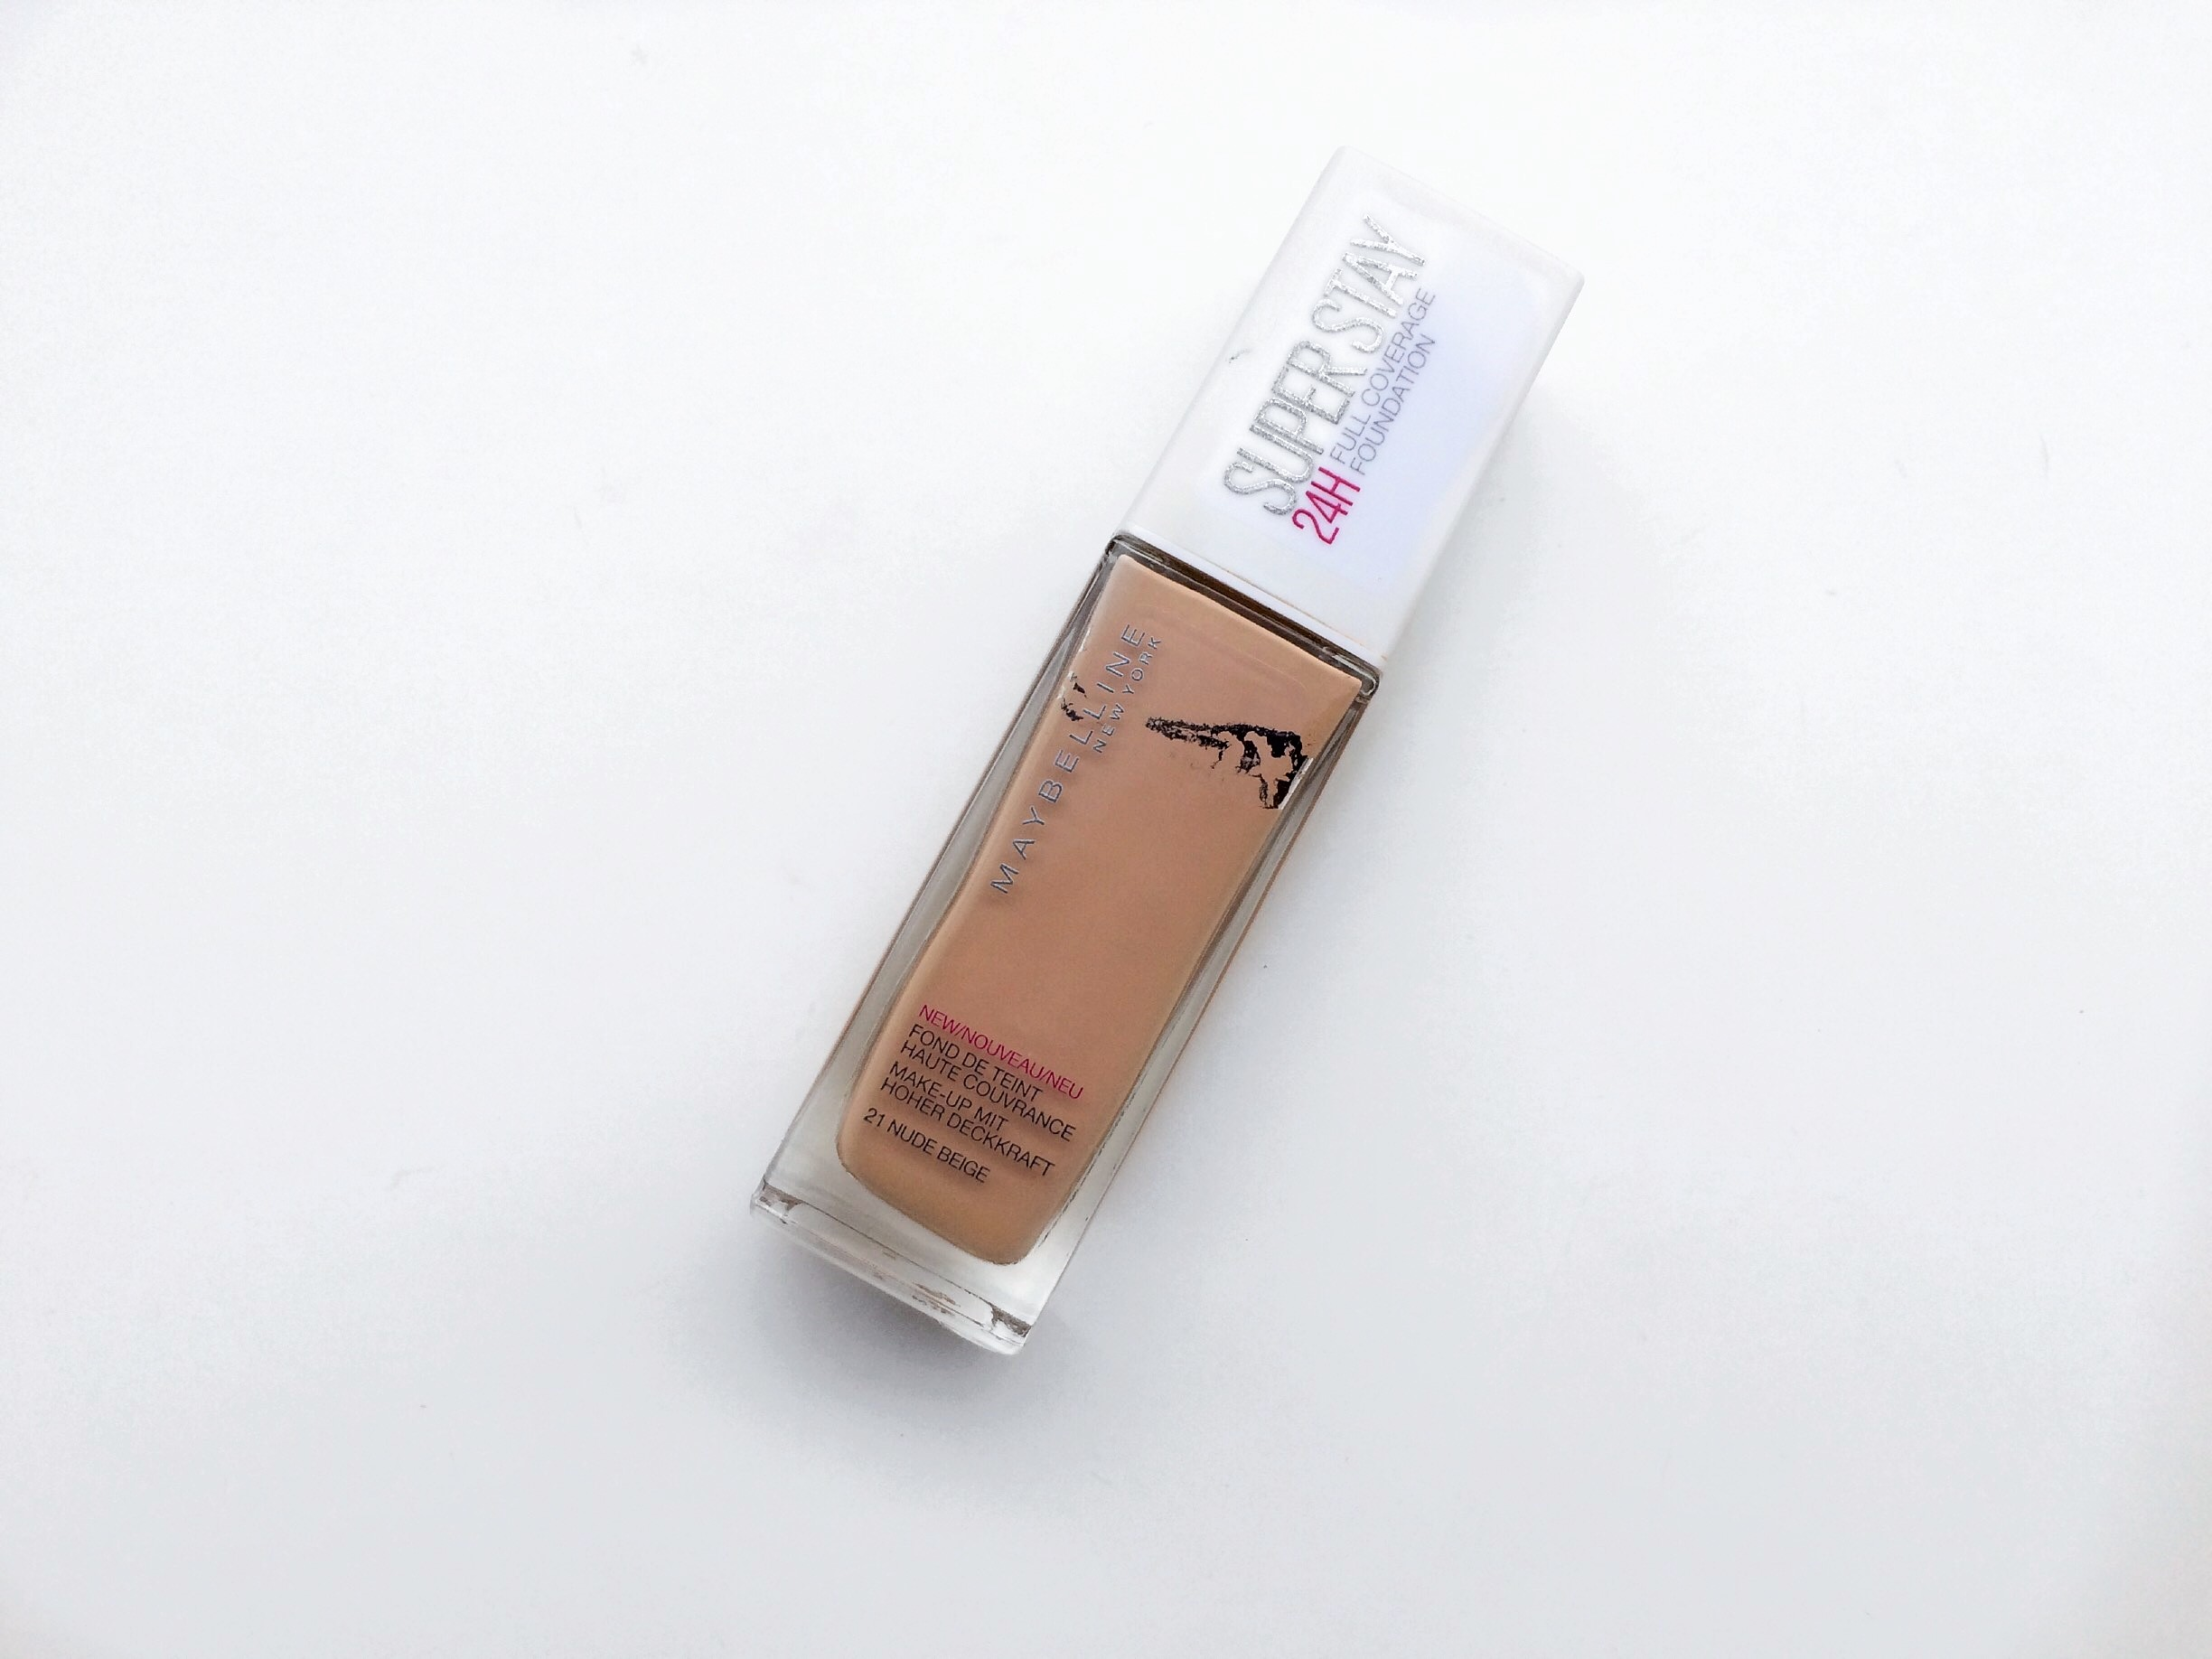 Maybelline Super Stay 24h Foundation | Review